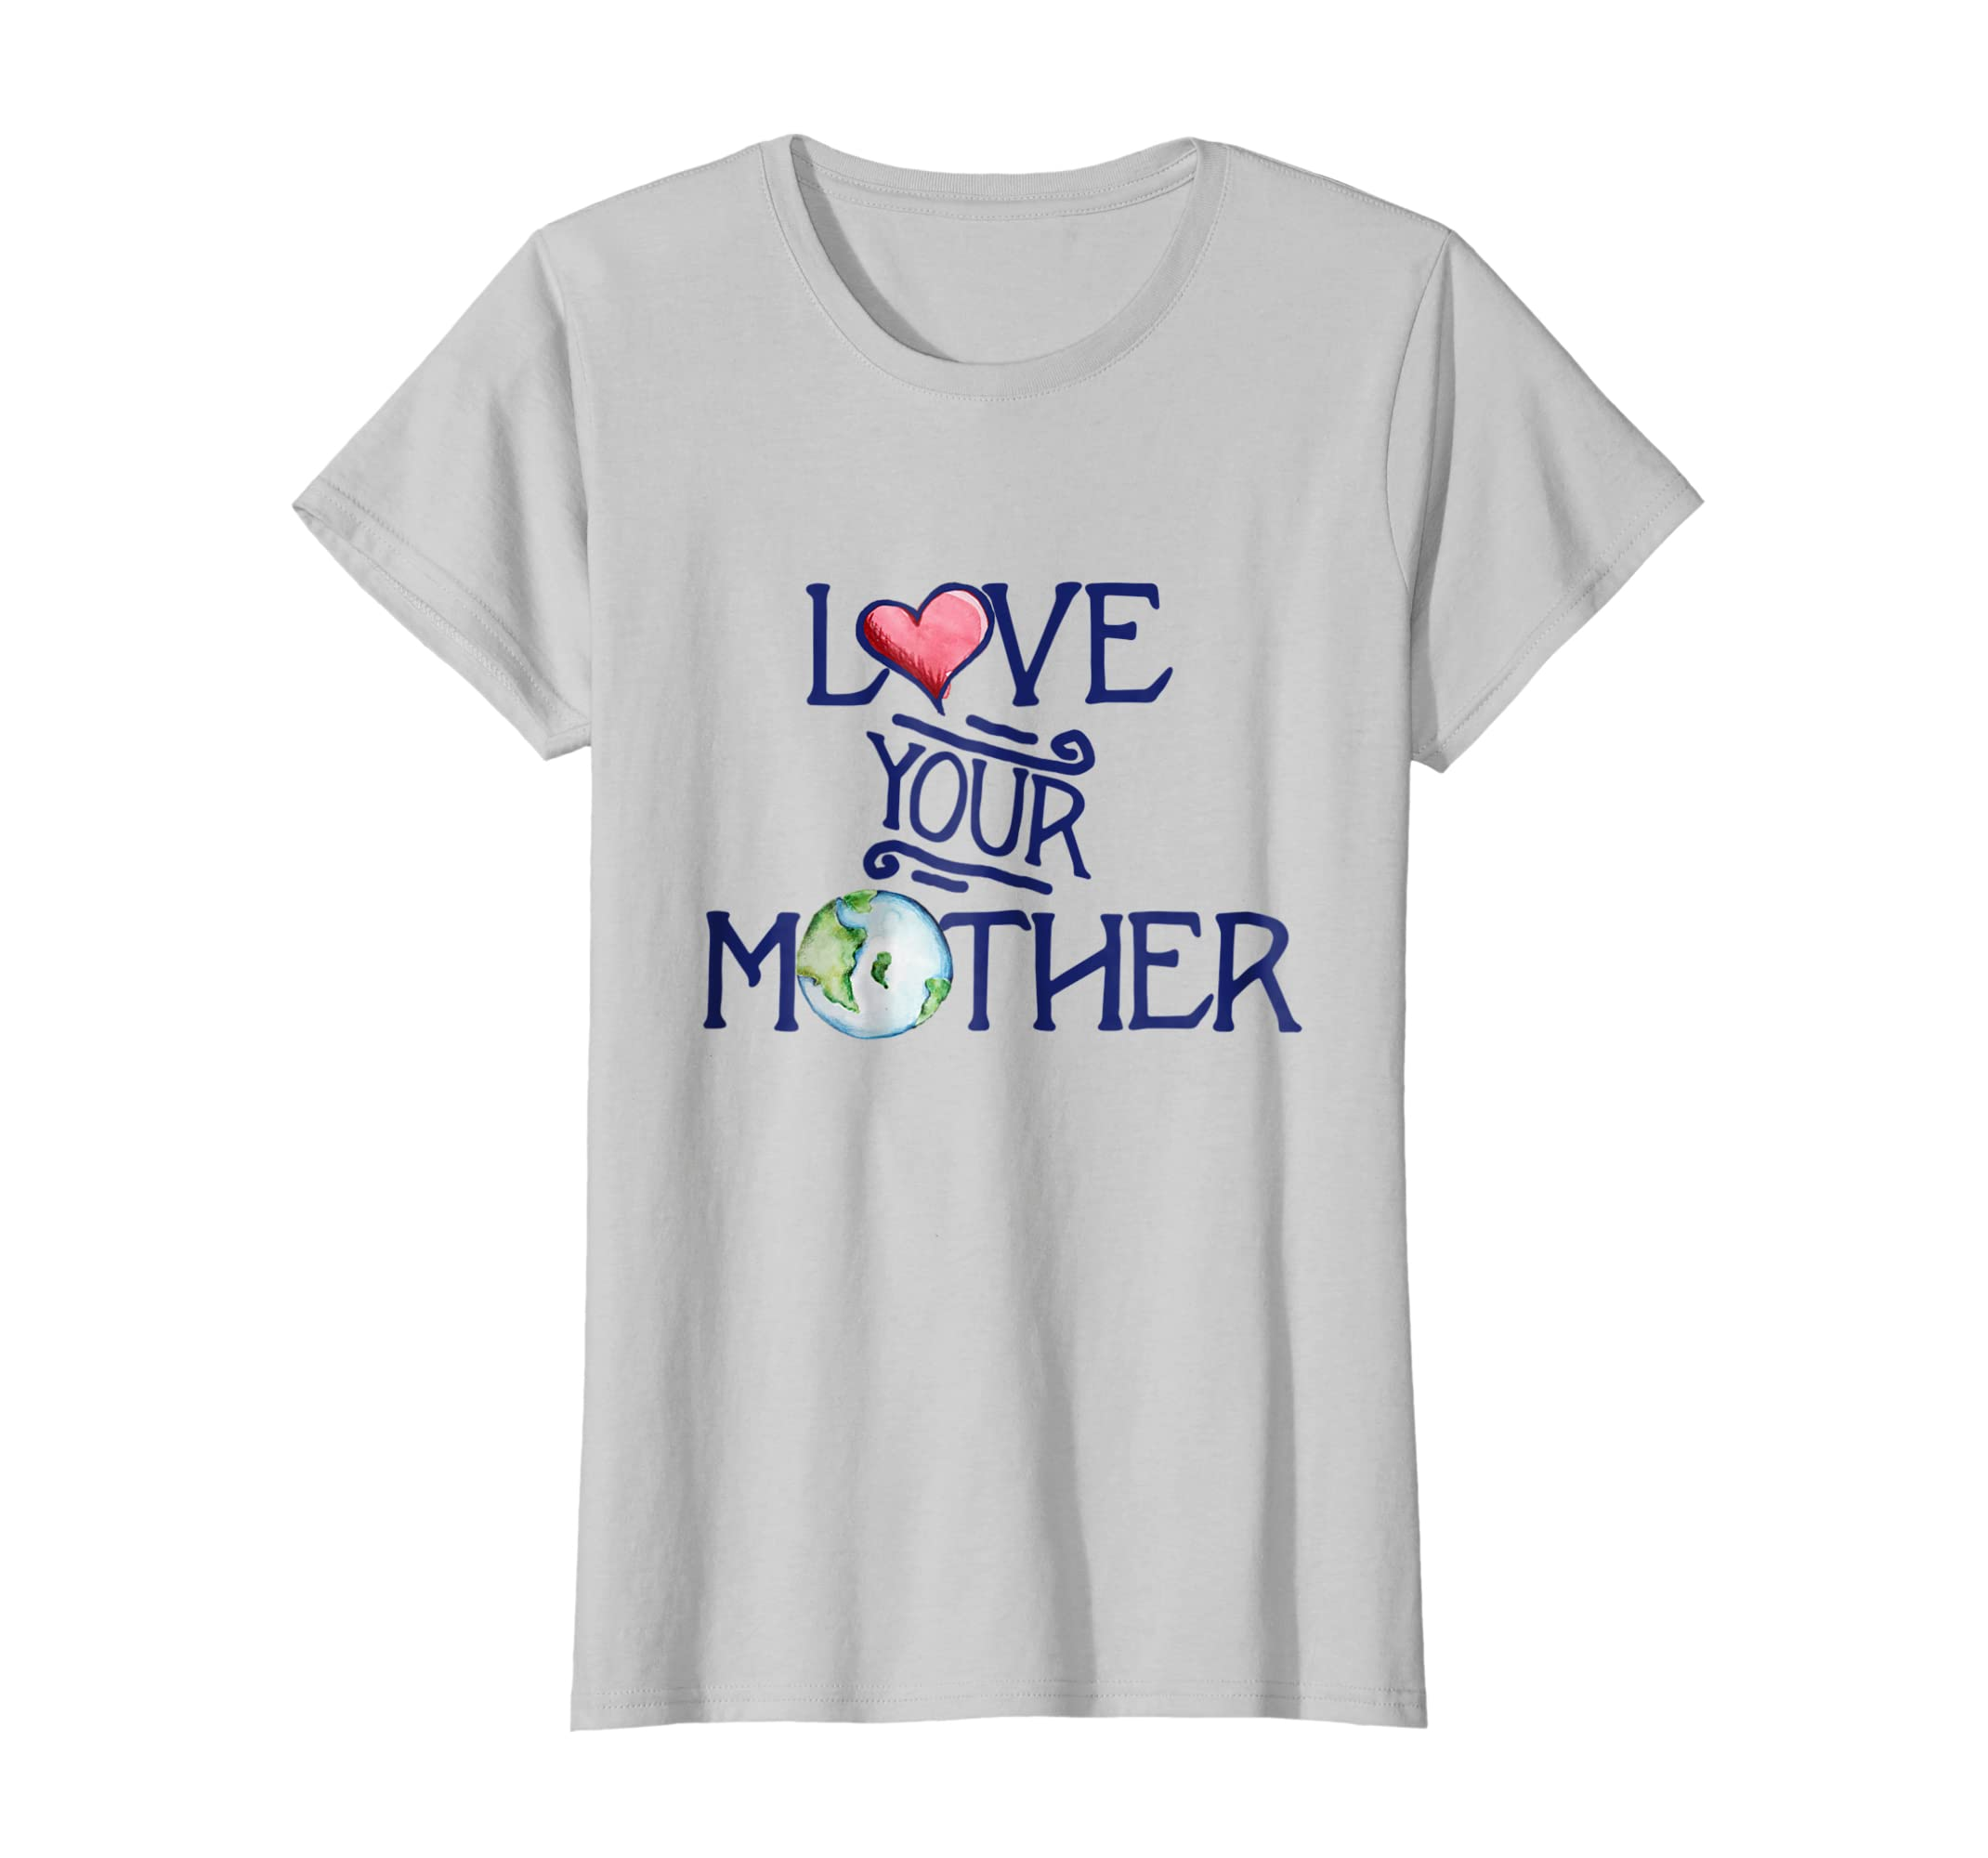 4374c4821 Amazon.com: Love your mother earth t-shirt earth day art shirts artistic:  Clothing